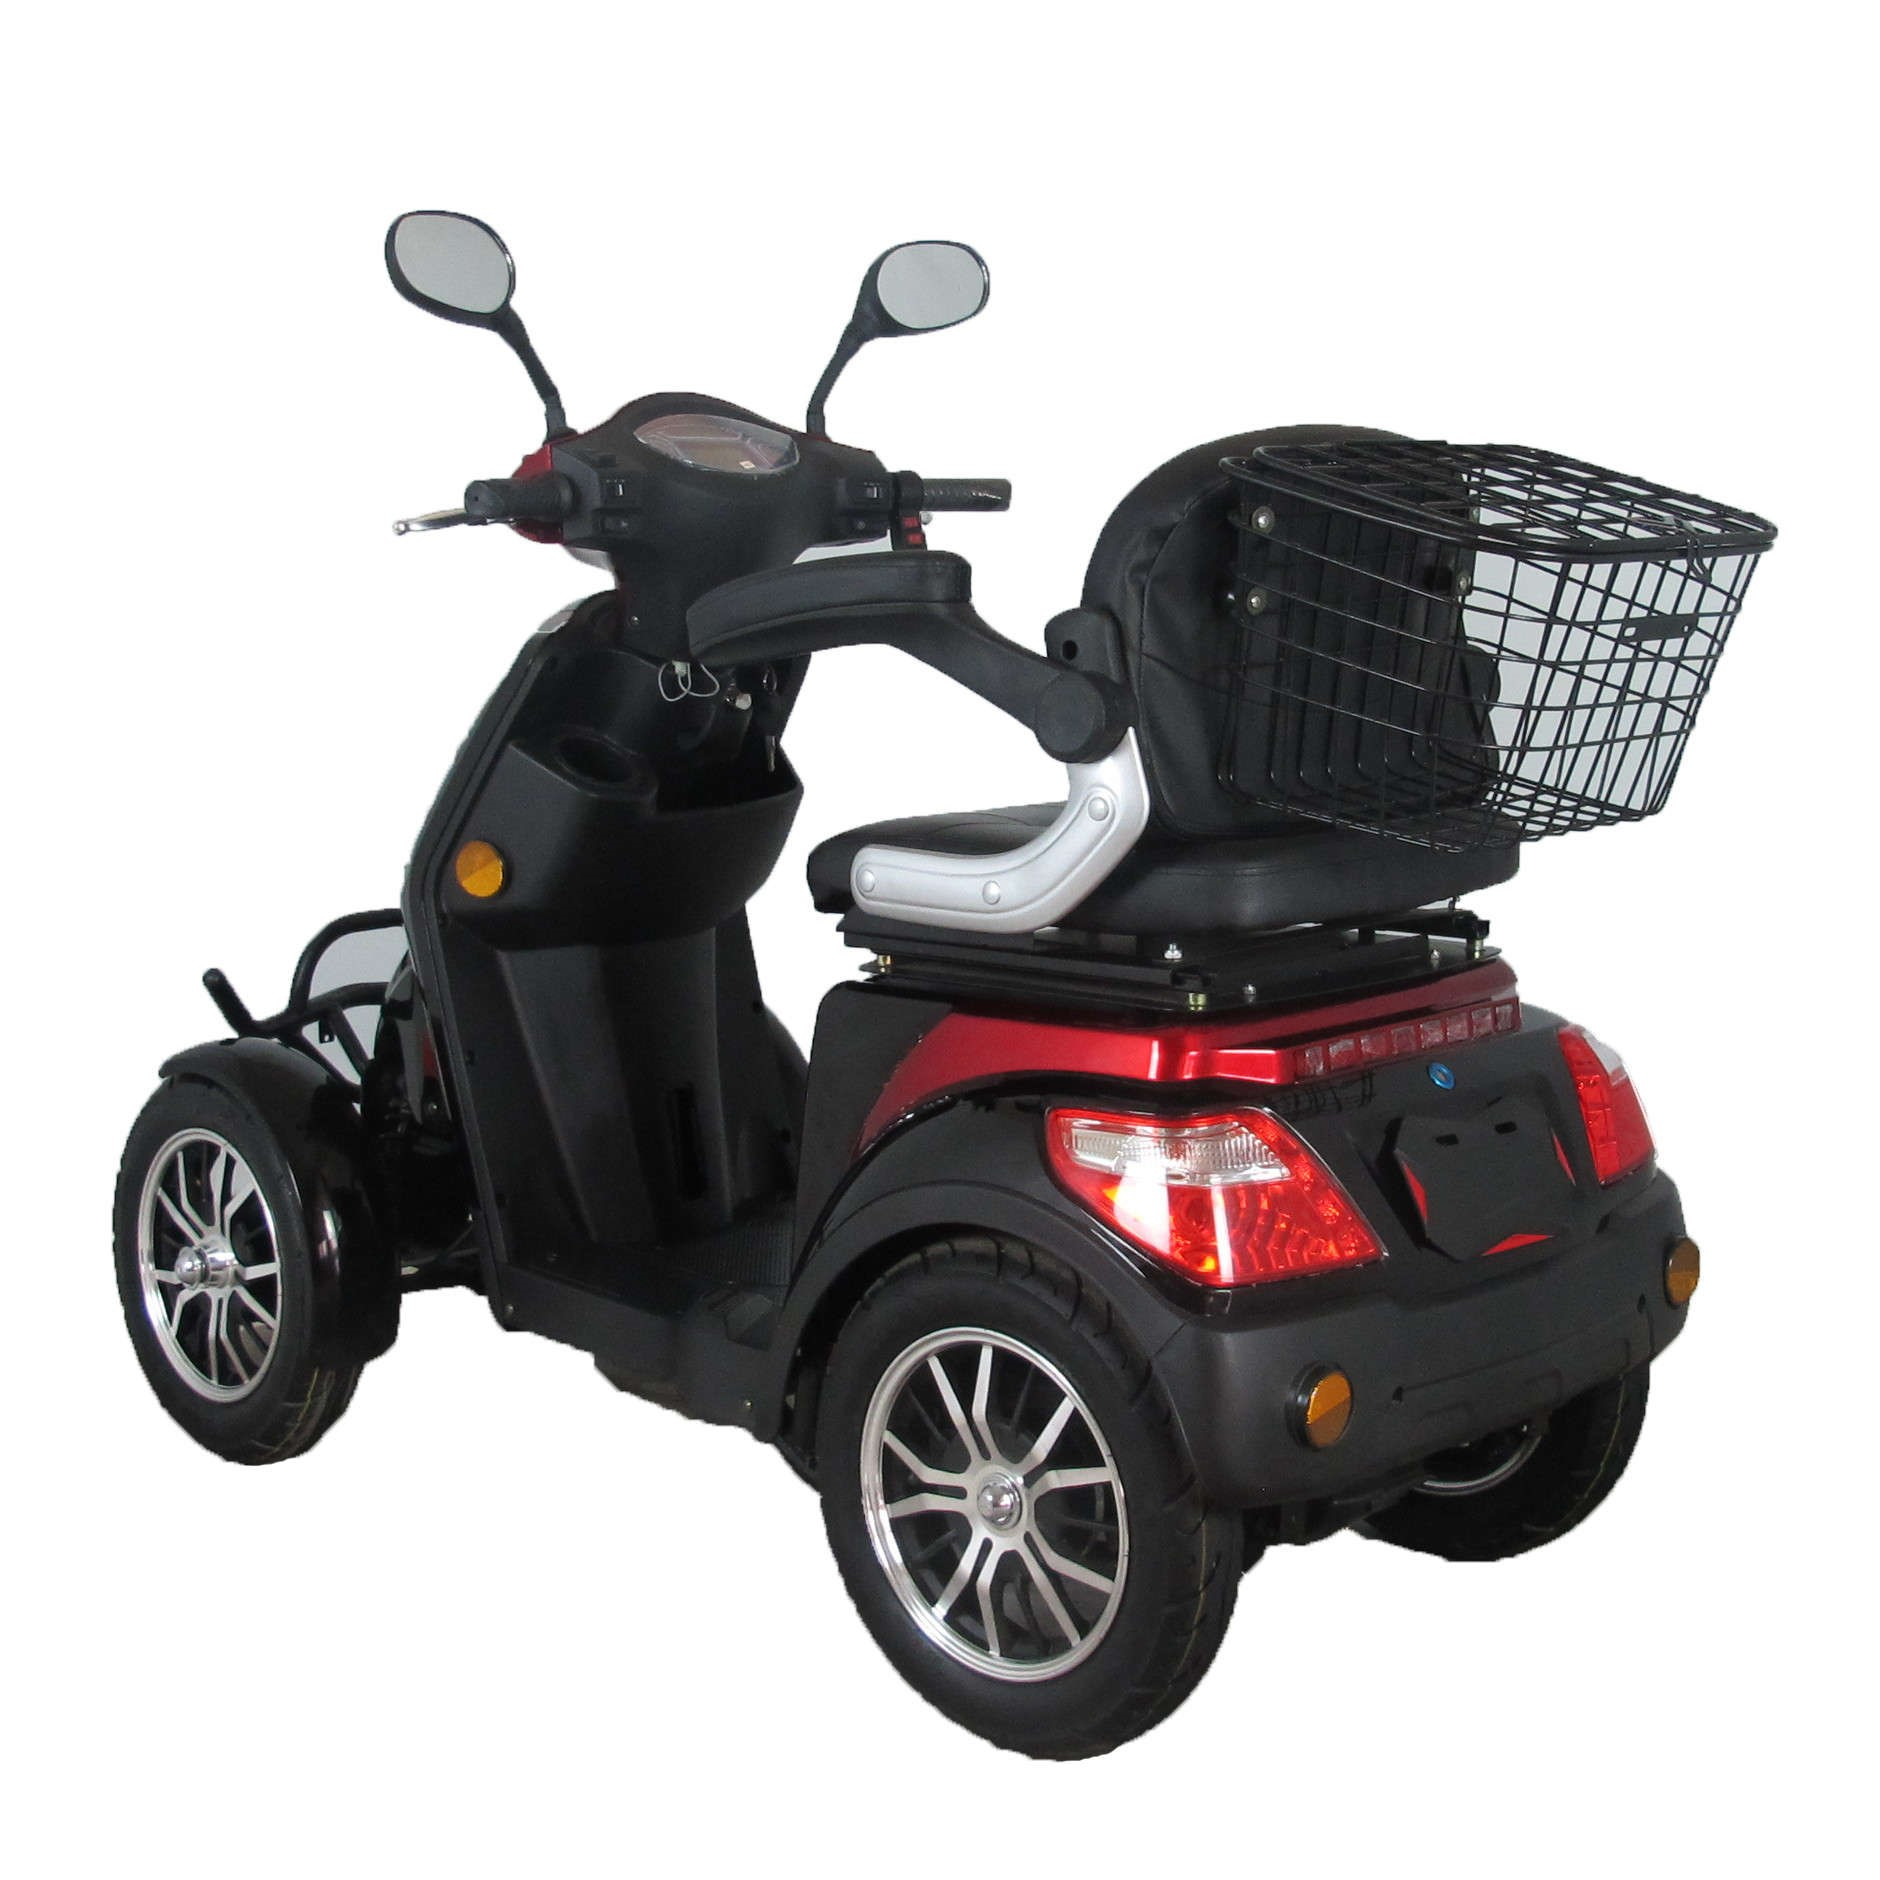 High quality Electric Mobility Scooter Quotes,China Electric Mobility Scooter Factory,Electric Mobility Scooter Purchasing